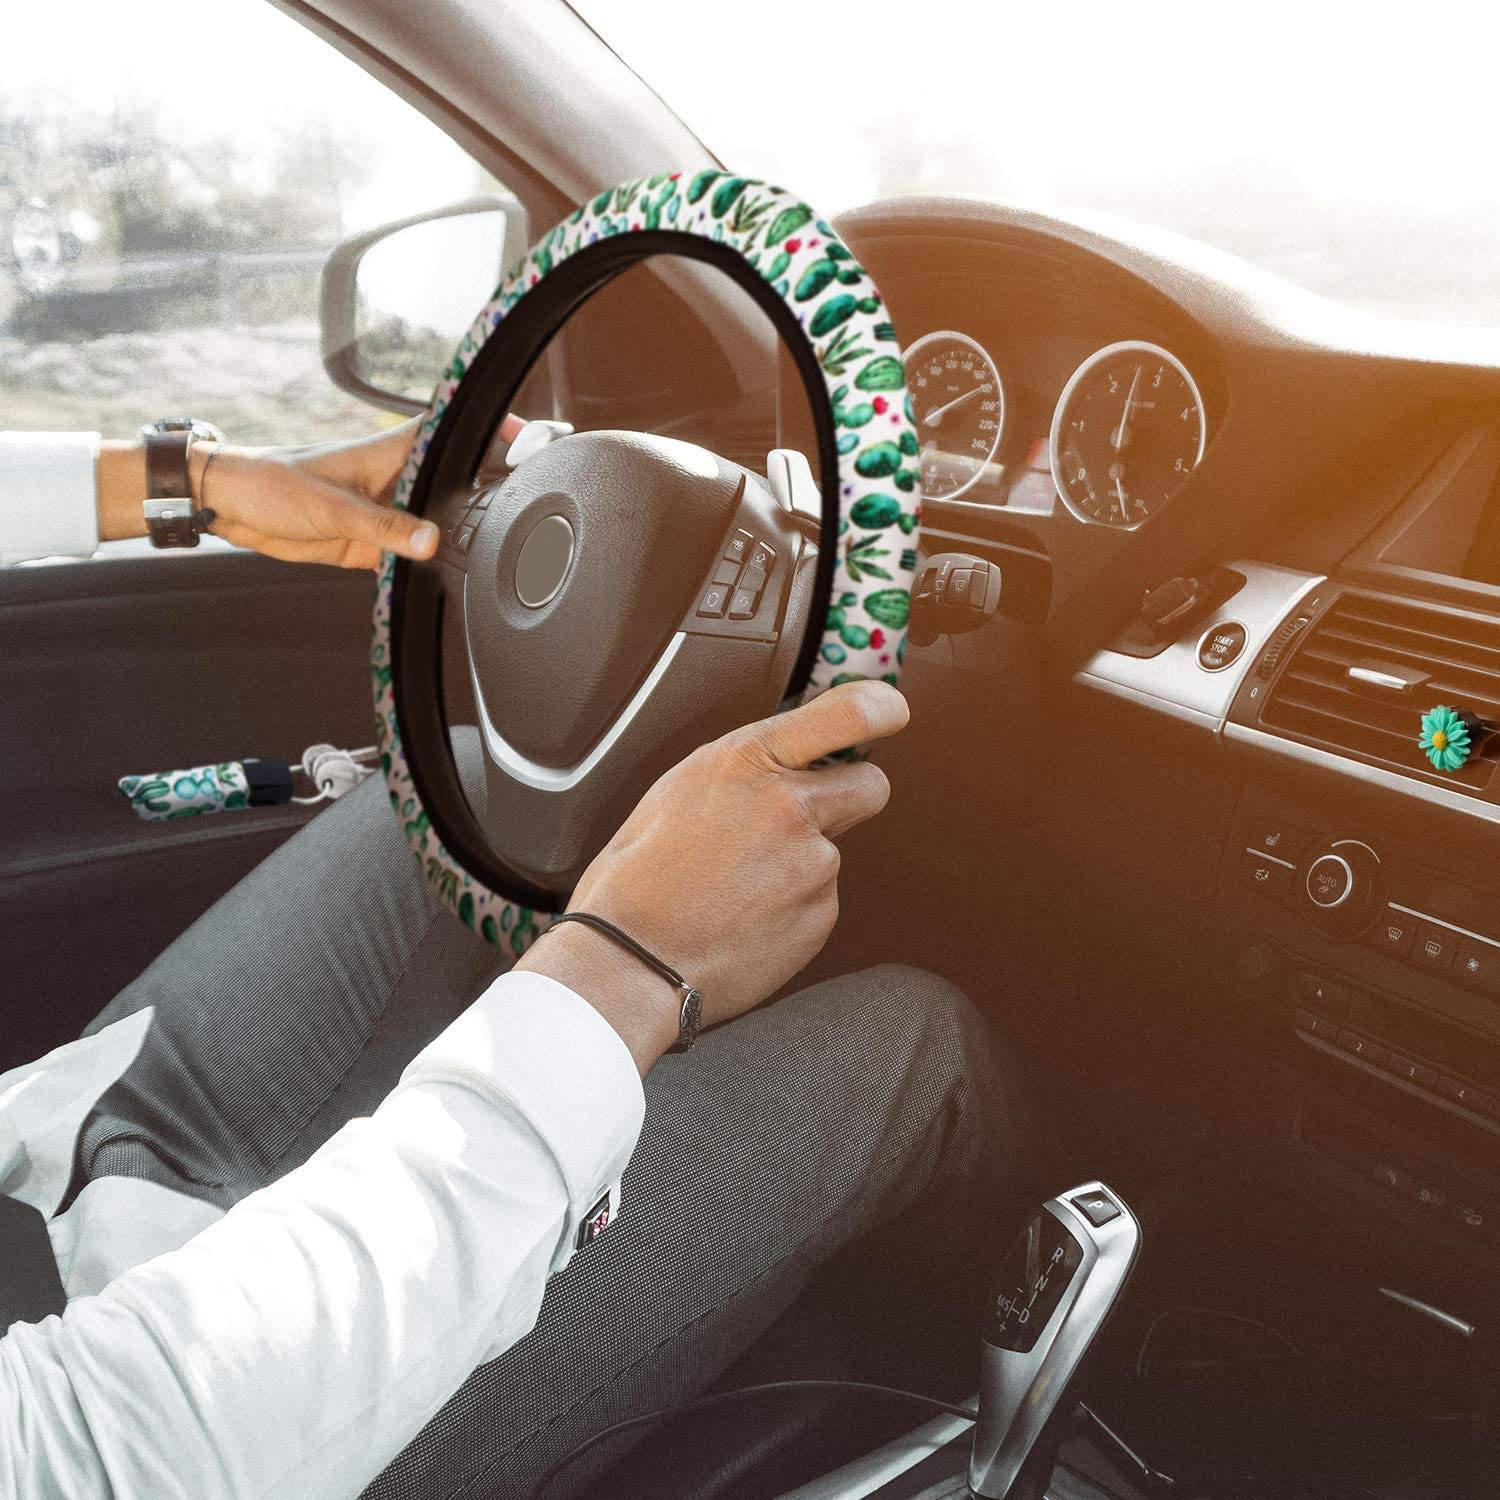 Cactus Car Accessories Set Cactus Steering Wheel Cover Cute Cactus Key Chains Cactus Car Seat Belt Pads Cover Buy Online At Best Prices In Bangladesh Daraz Com Bd